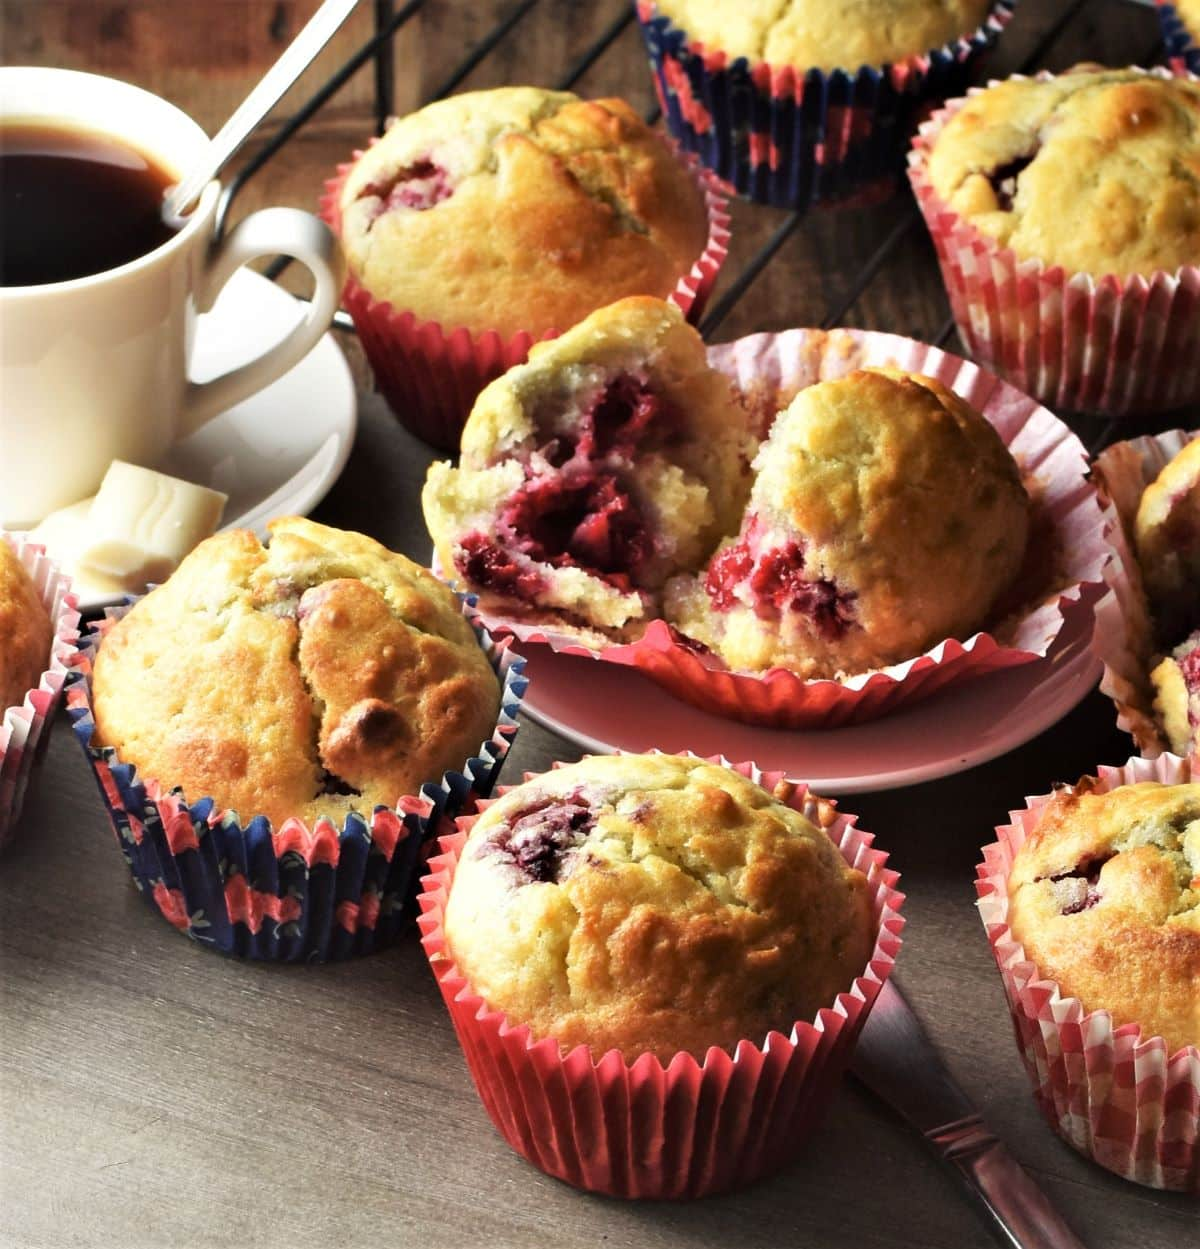 Raspberry muffins in red liners.